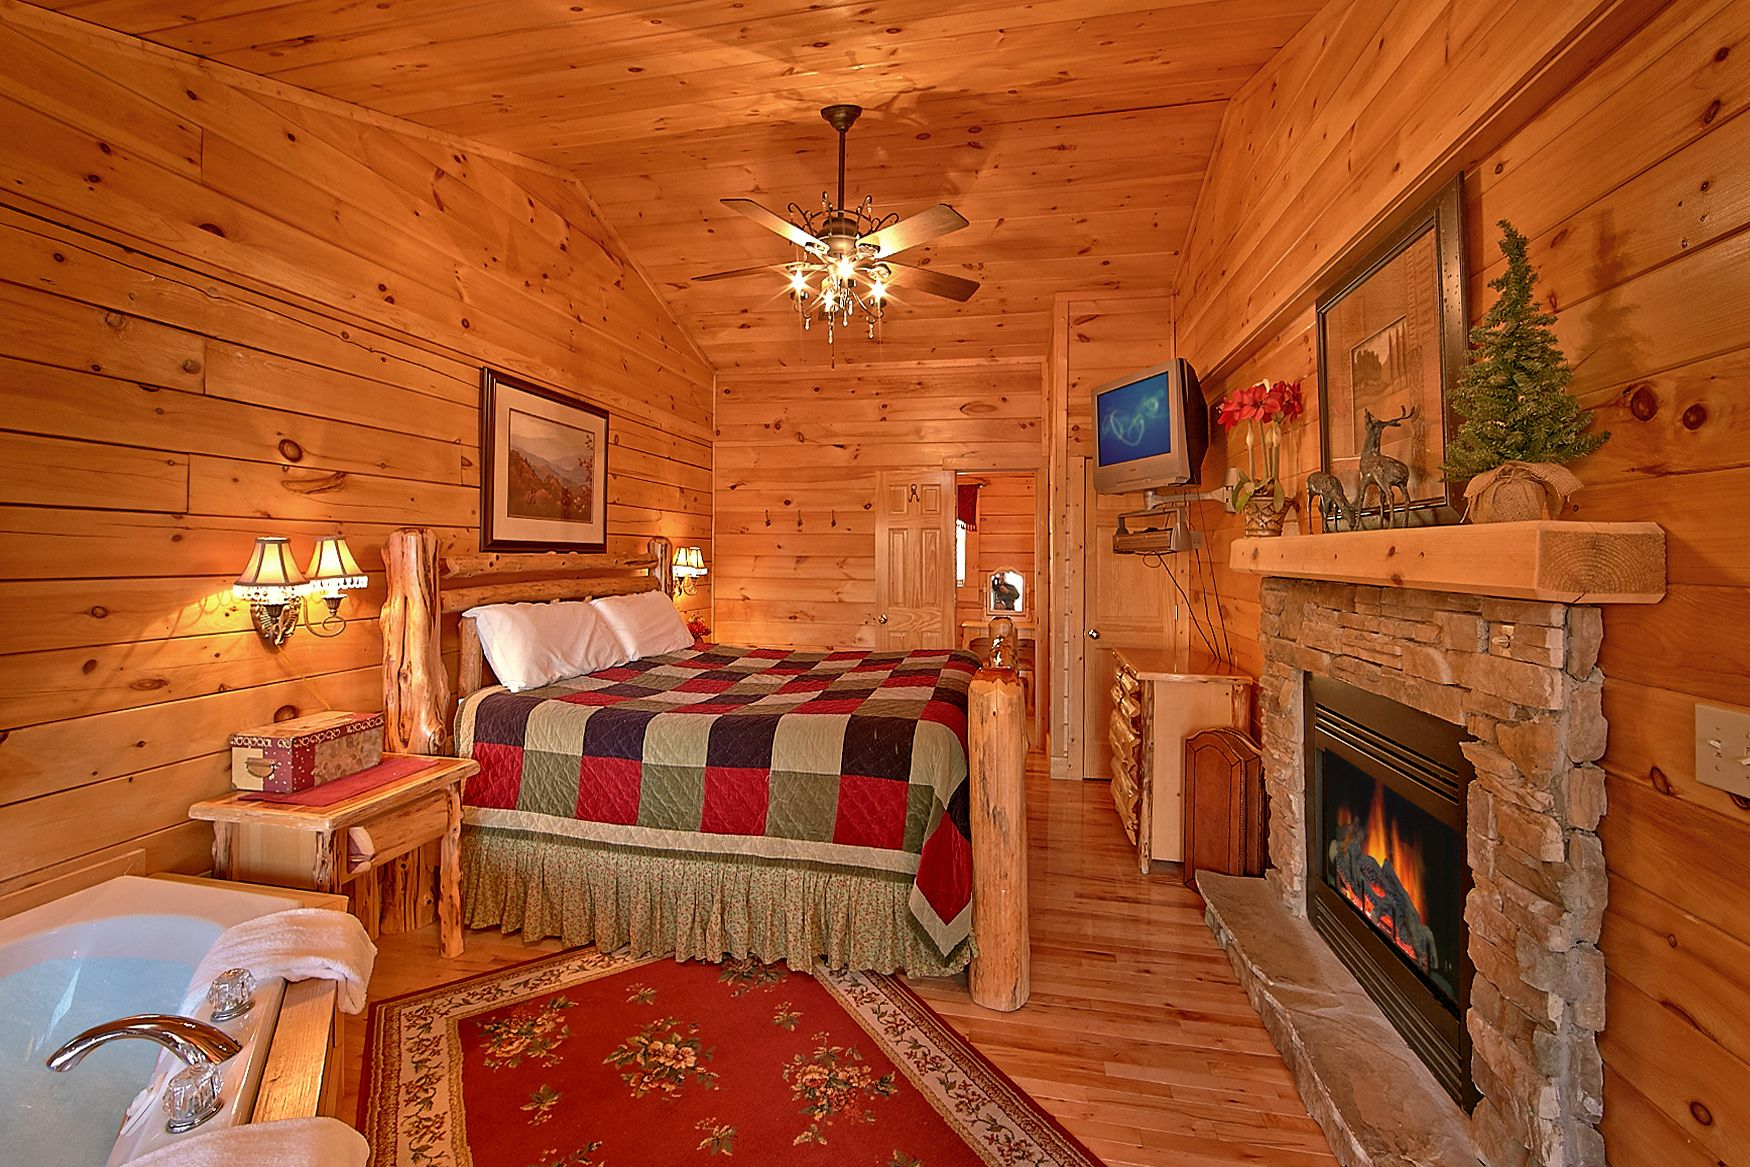 usa cabin sky smoky mountain in bear harbor watch a encounter luxury resort cabins